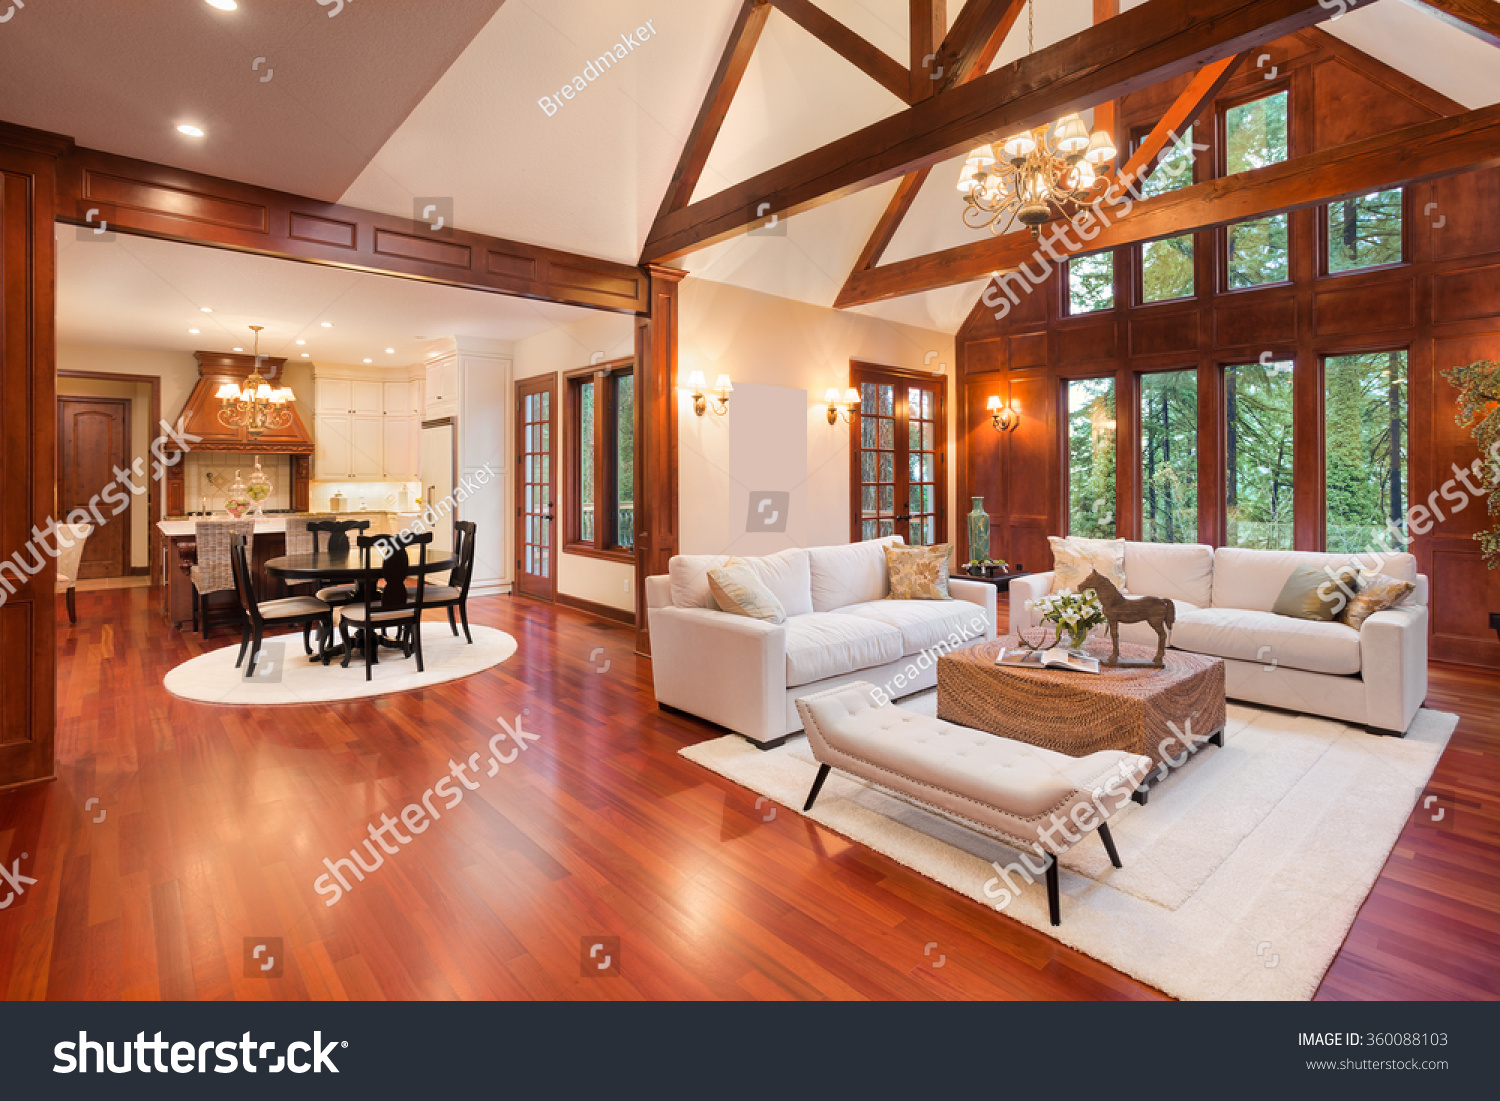 Beautiful And Huge Living Room With Hardwood Floors Tall Vaulted Ceiling Fireplace Couch